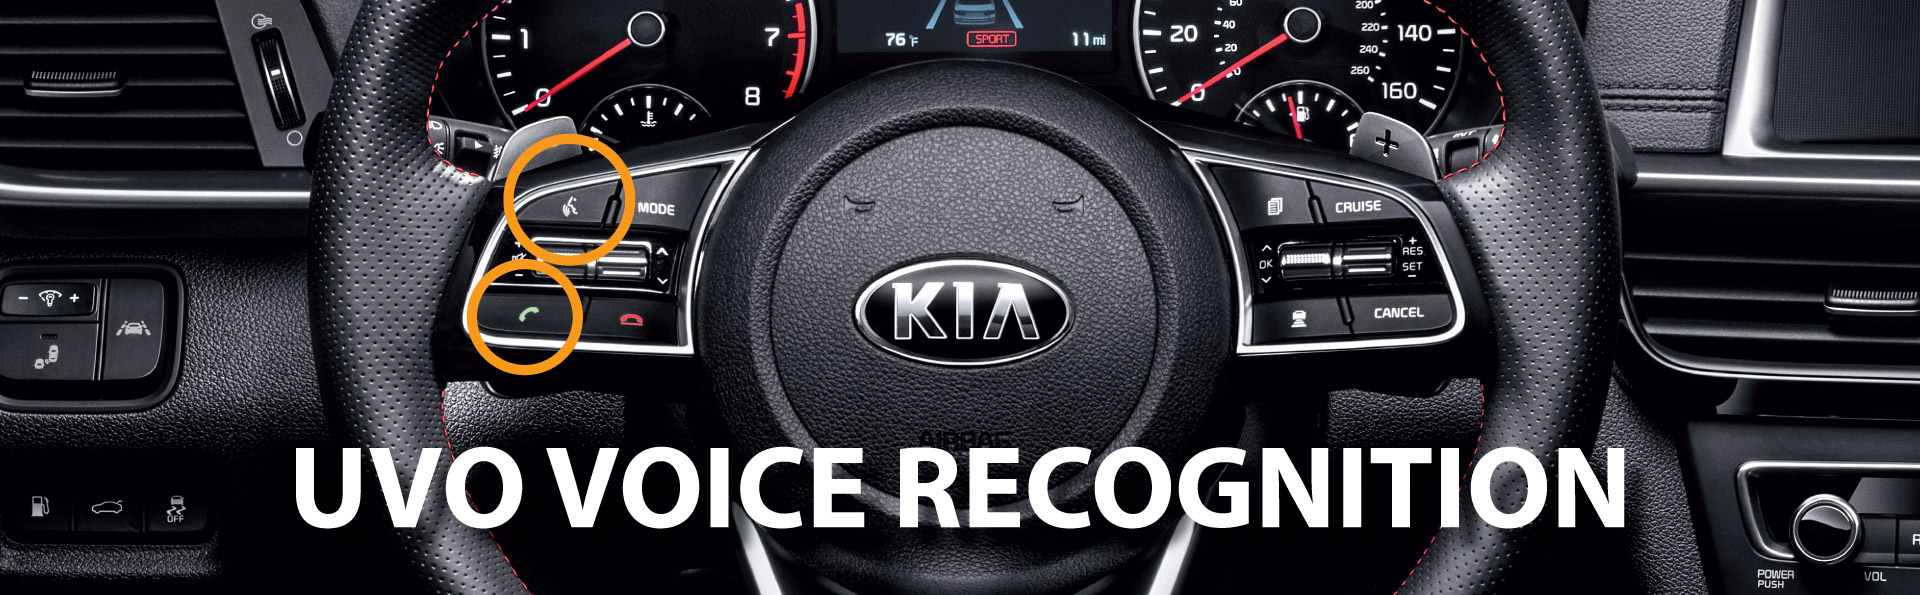 kia uvo voice recognition gateway warrington pa